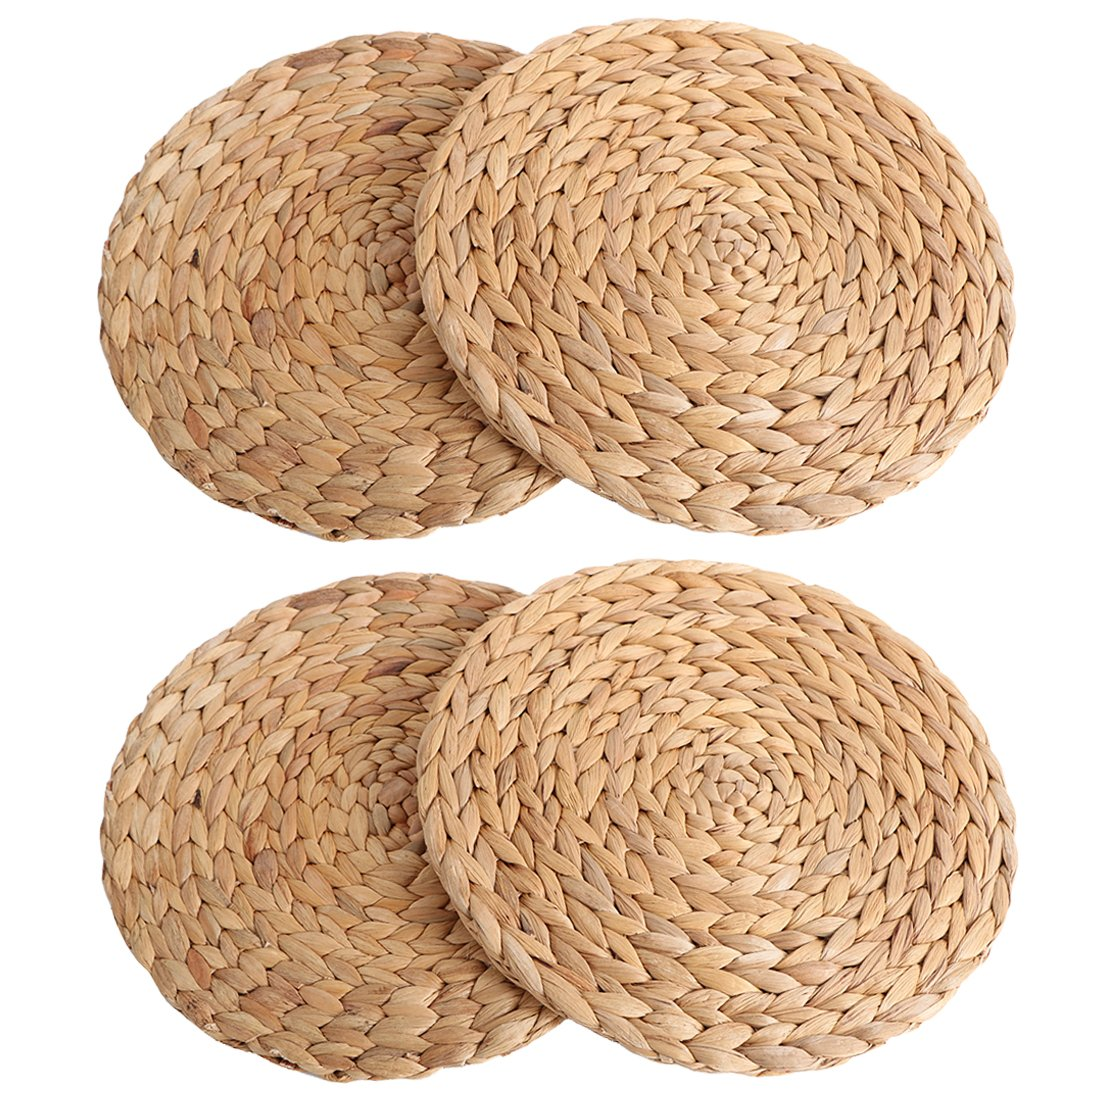 Natural woven braided round placemats - Come explore Serene Decor Slow Living as well as Small Thoughtful Changes at Home.